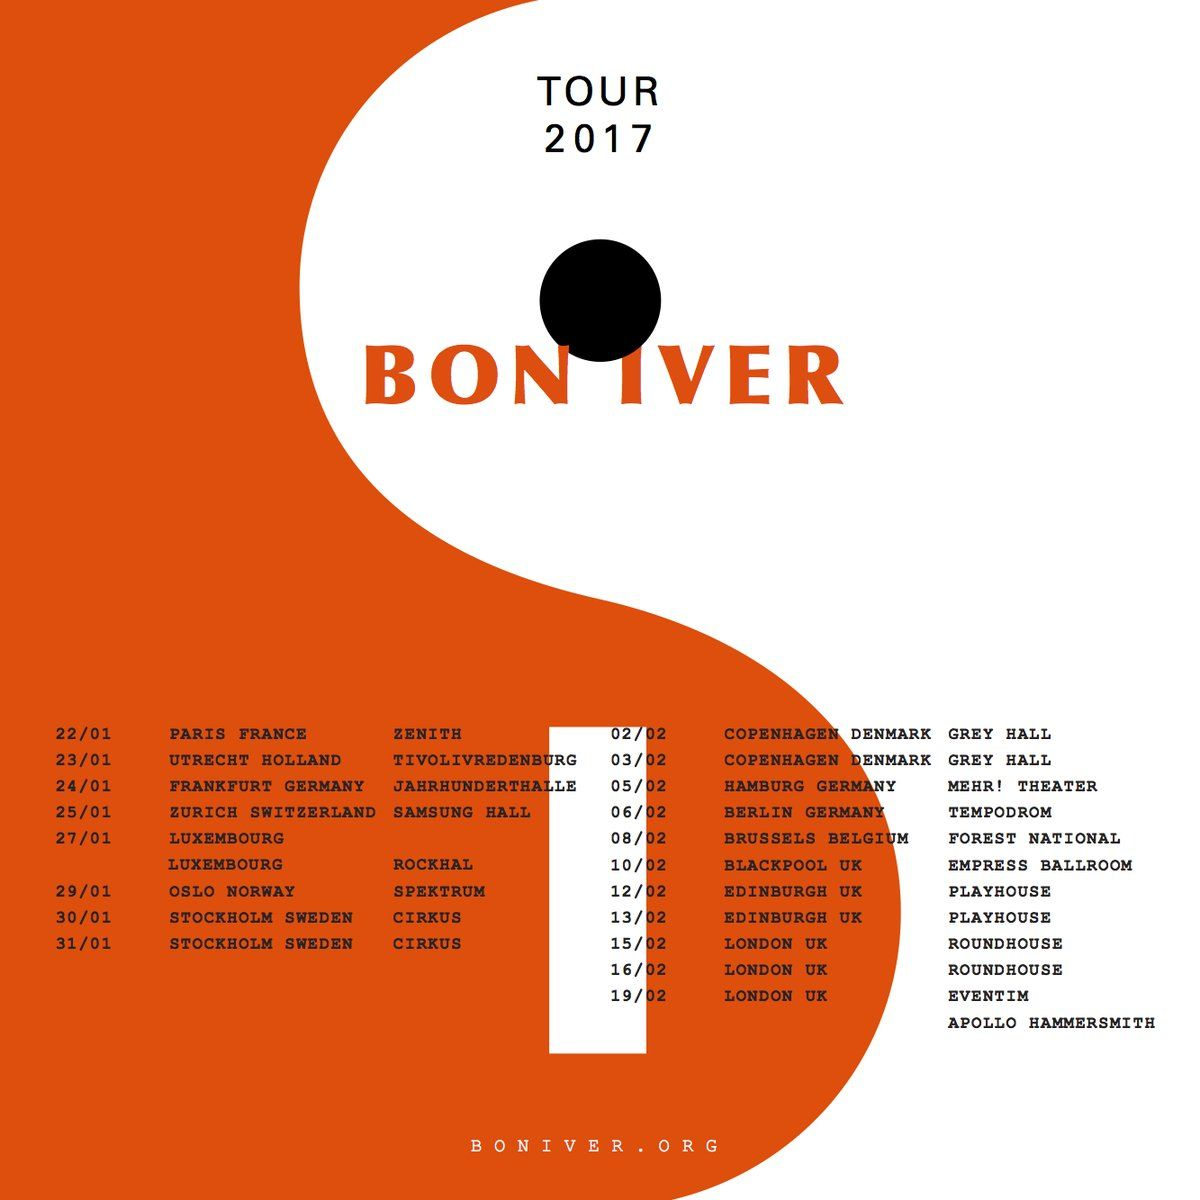 Bon iver announce new 2017 tour dates a colorful world tour bon iver announce new 2017 tour dates hexwebz Gallery